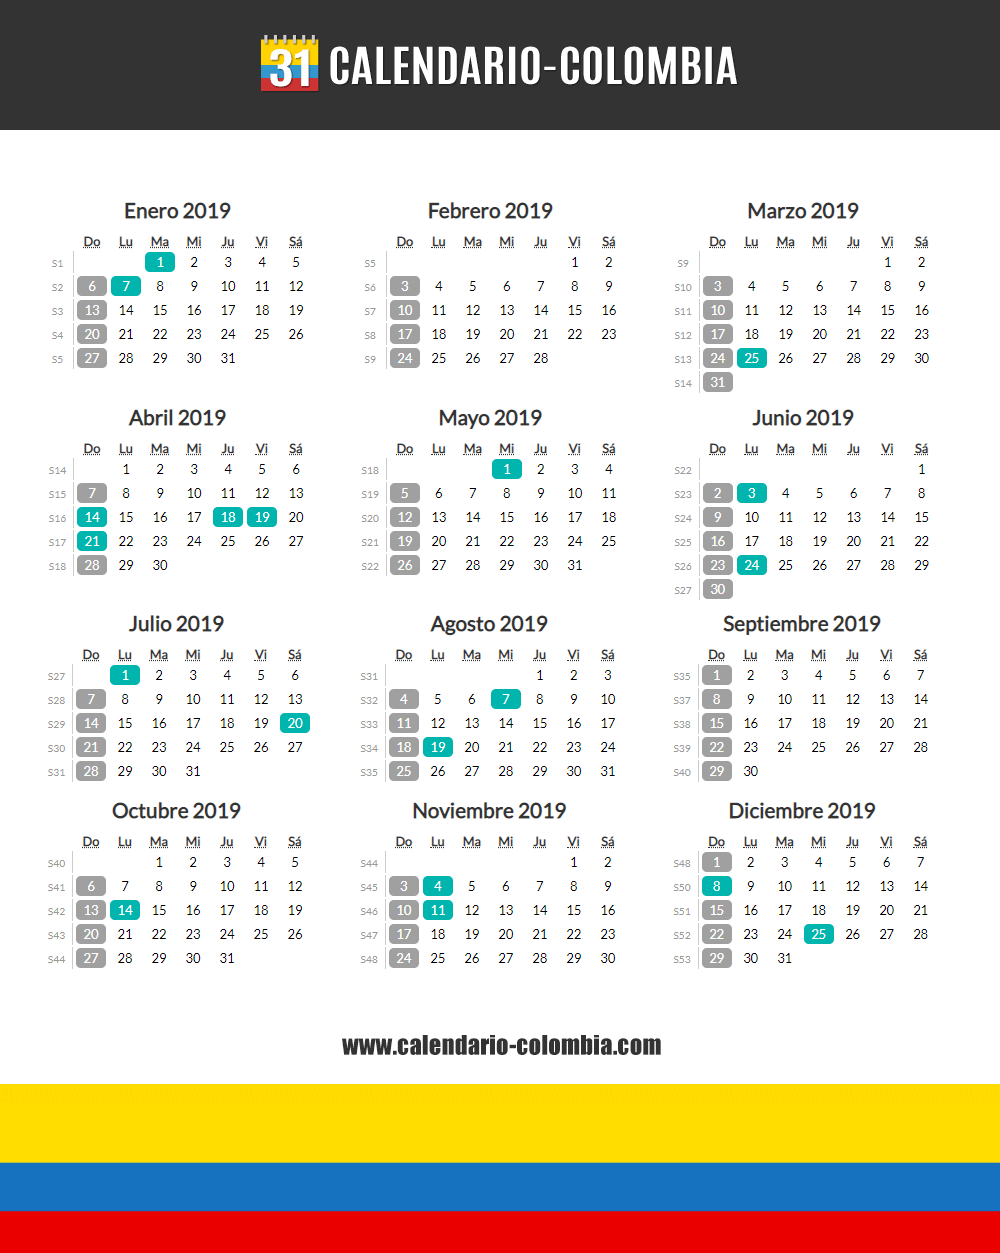 Calendario Colombia 2020.Calendario 2019 Colombia Calendario 2019 Colombia